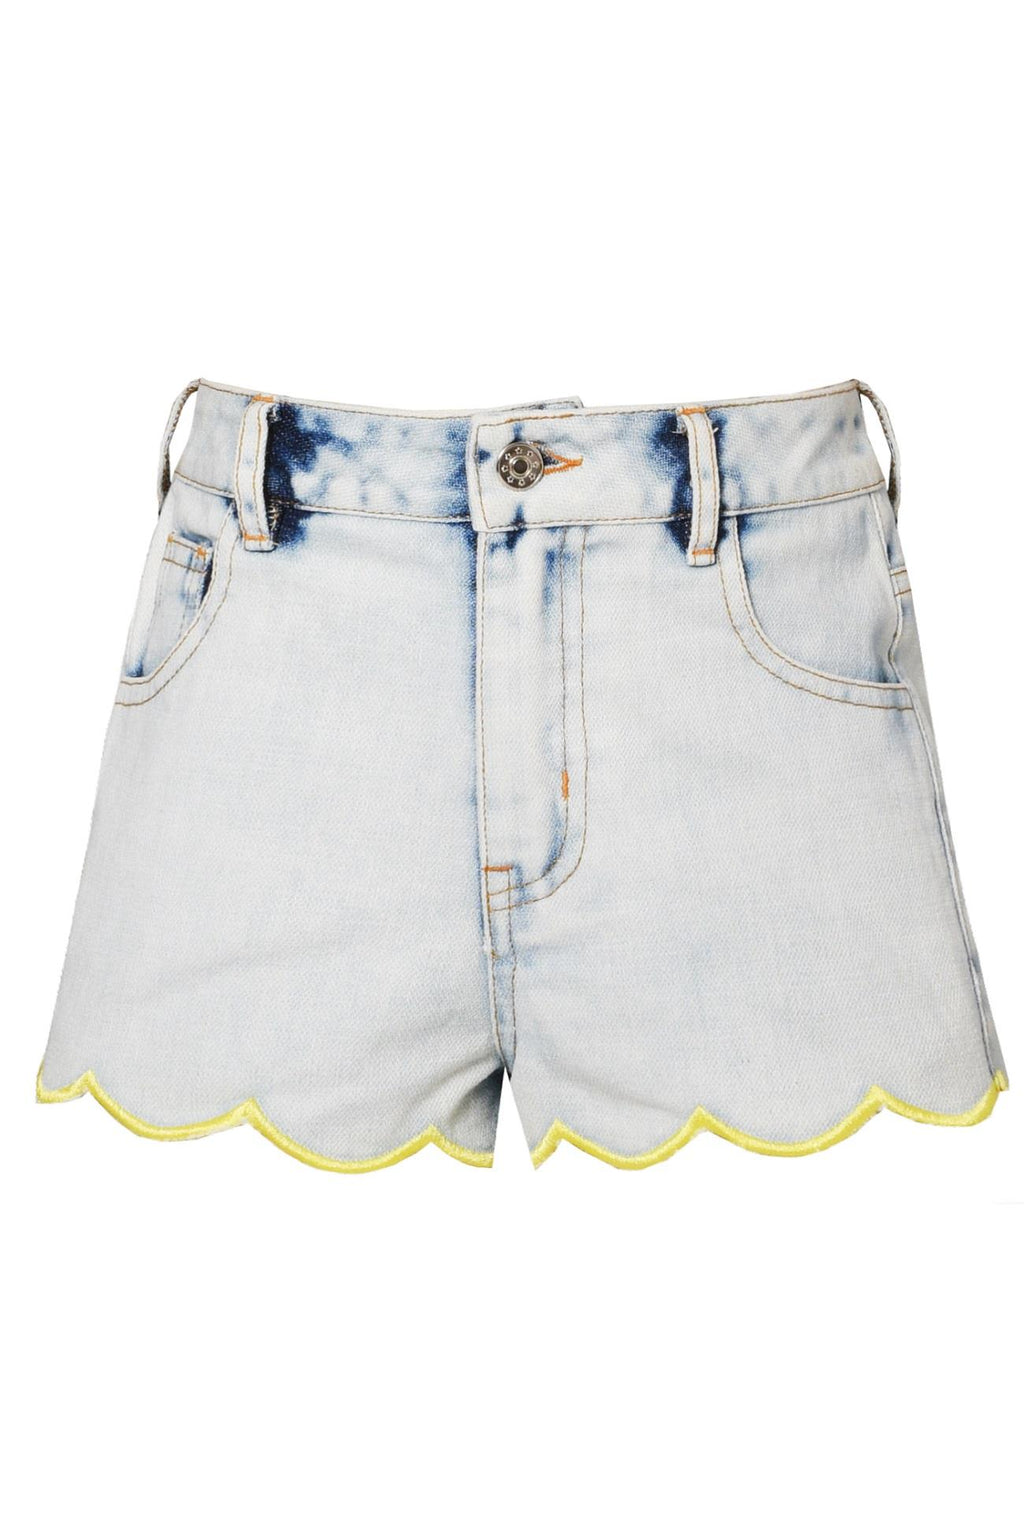 Hannah Banana Denim Short